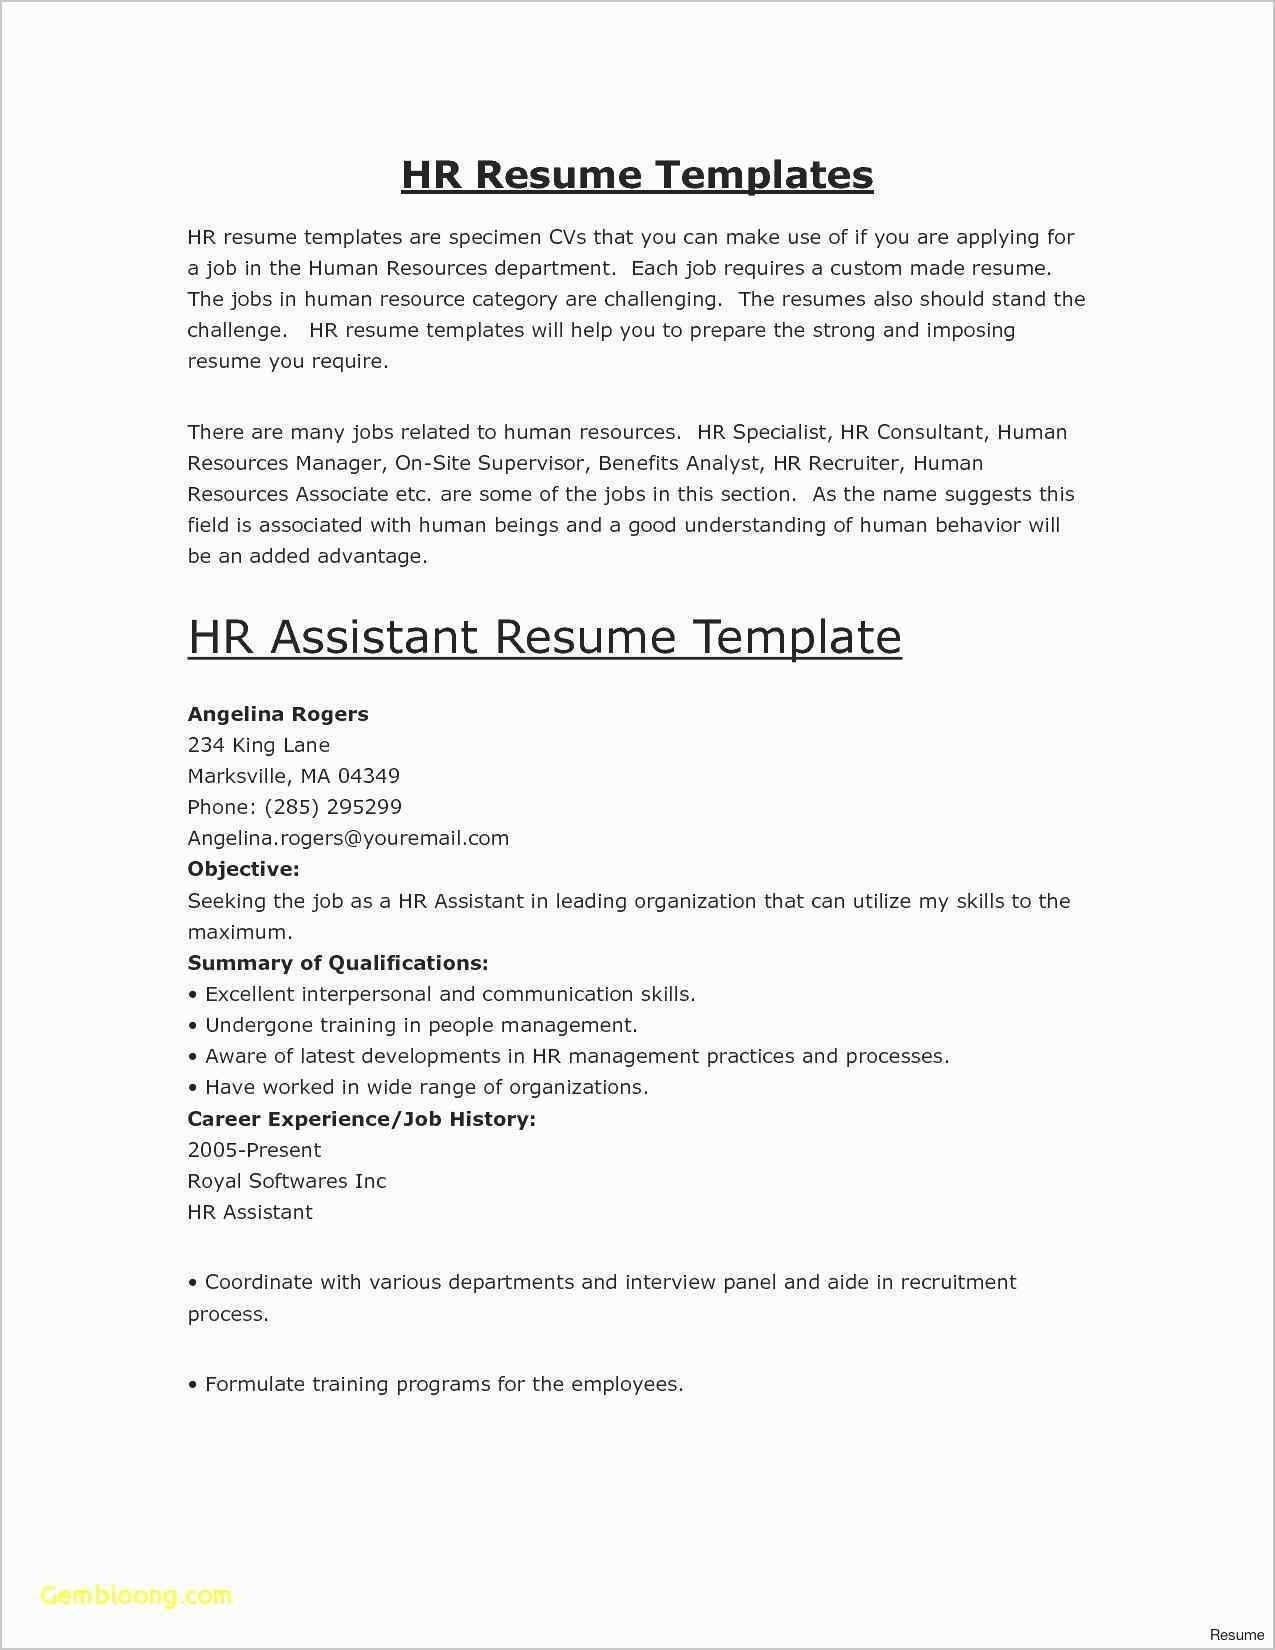 Orthodontic assistant Resume Sample - orthodontist Resume New orthodontic assistant Resume Sample New 50